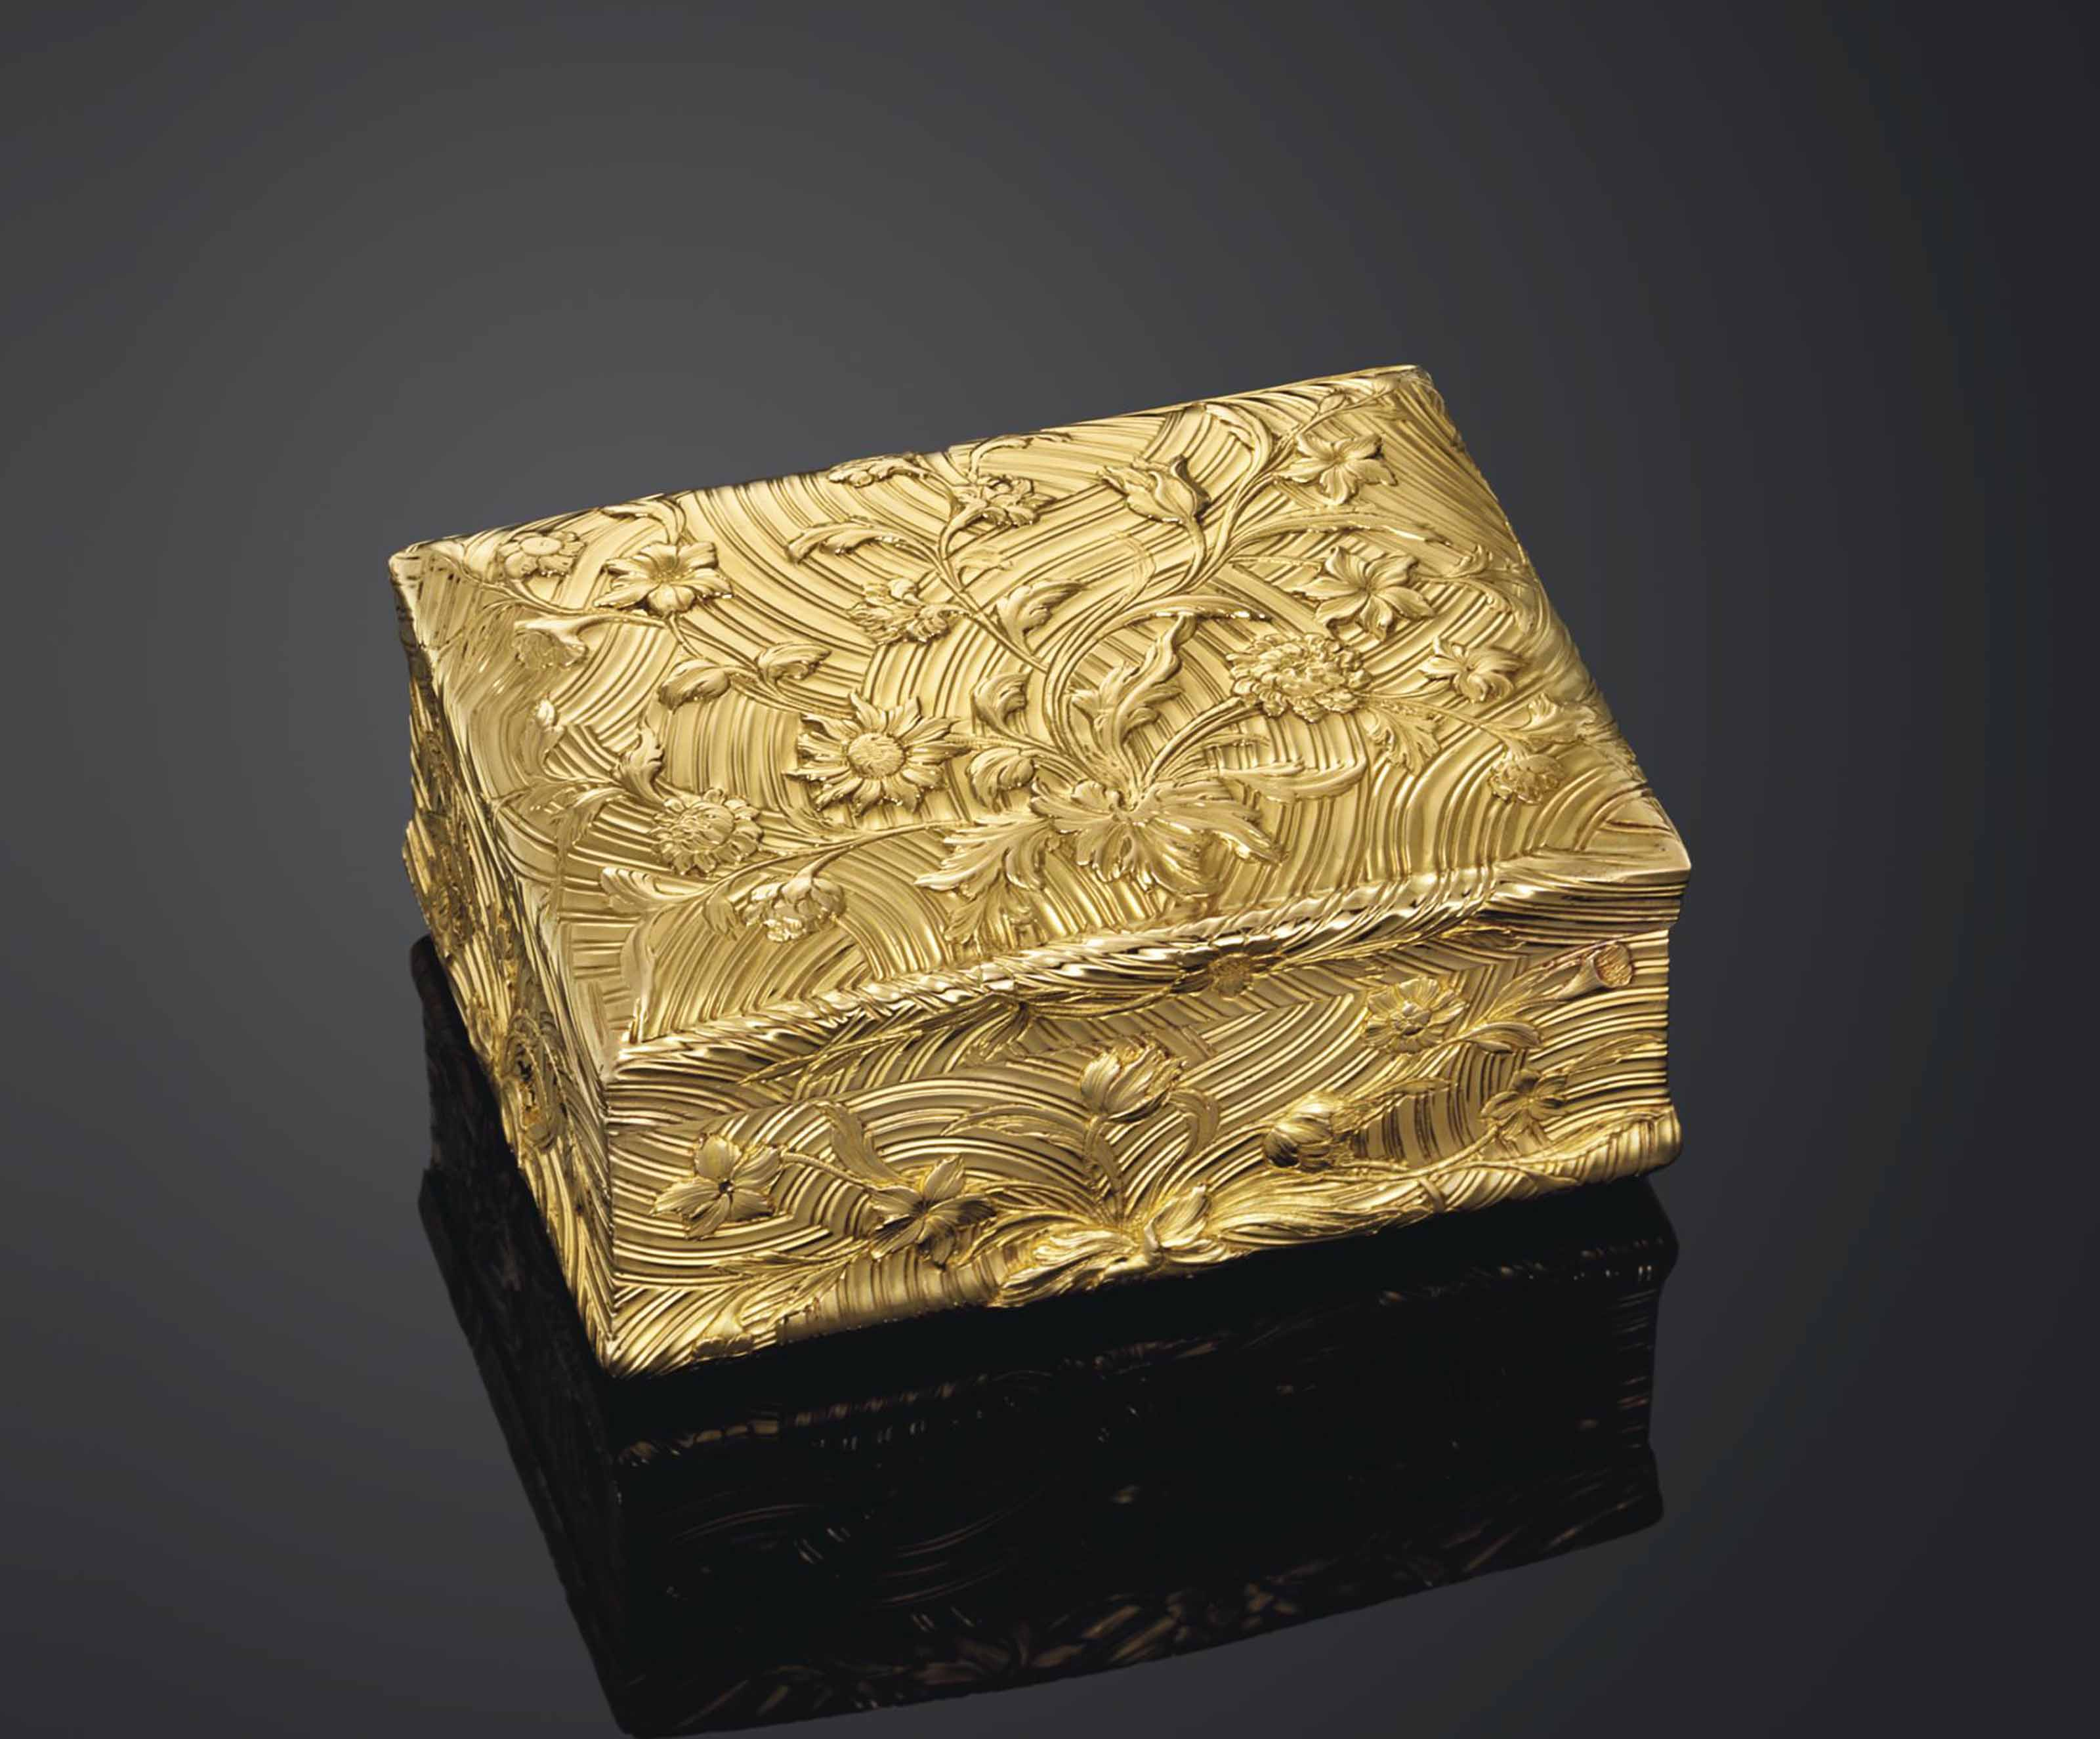 A LOUIS XV-STYLE GOLD SNUFF-BO